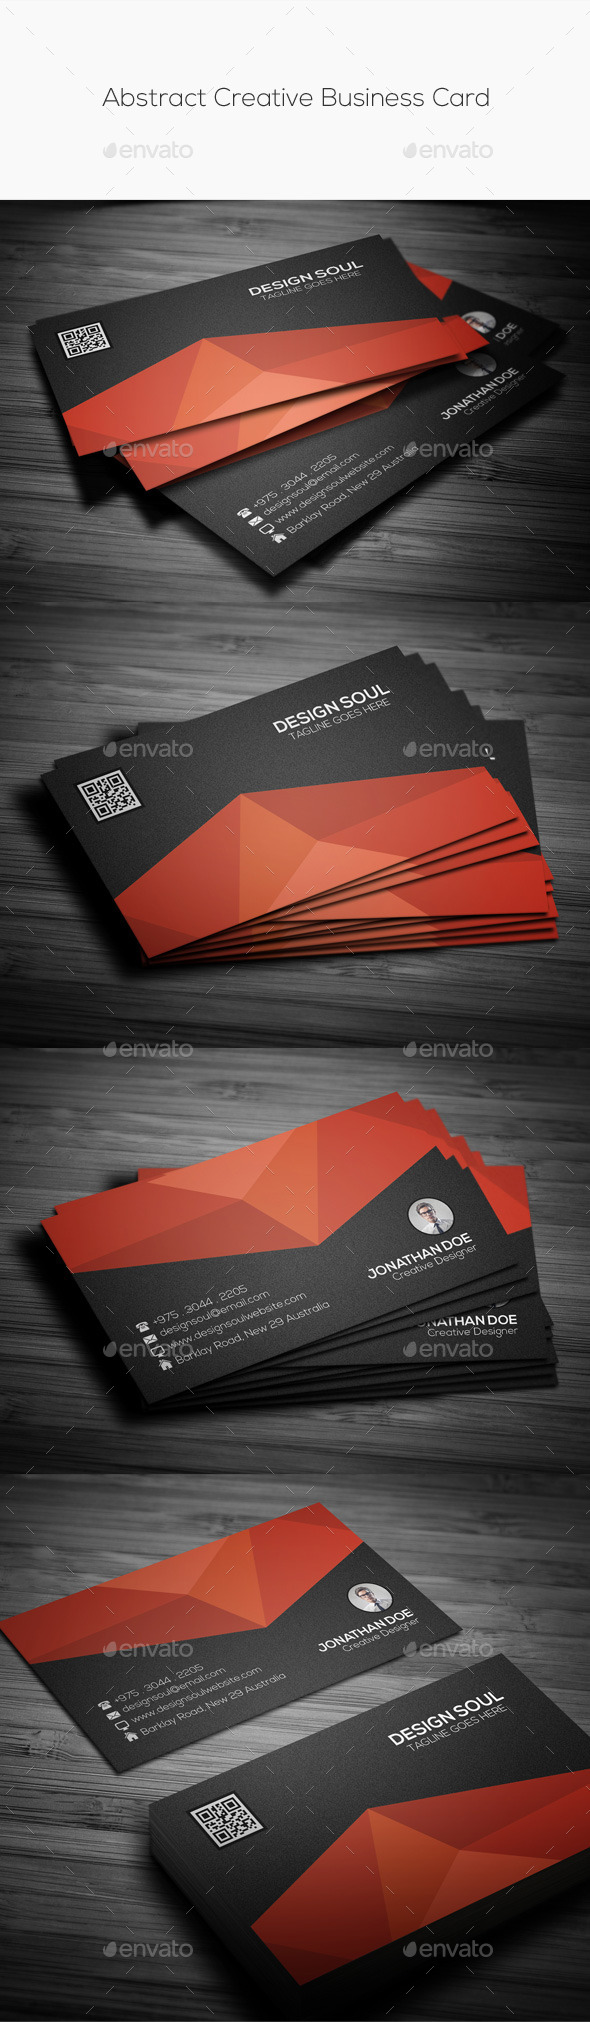 GraphicRiver Abstract Creative Business Card 11267766